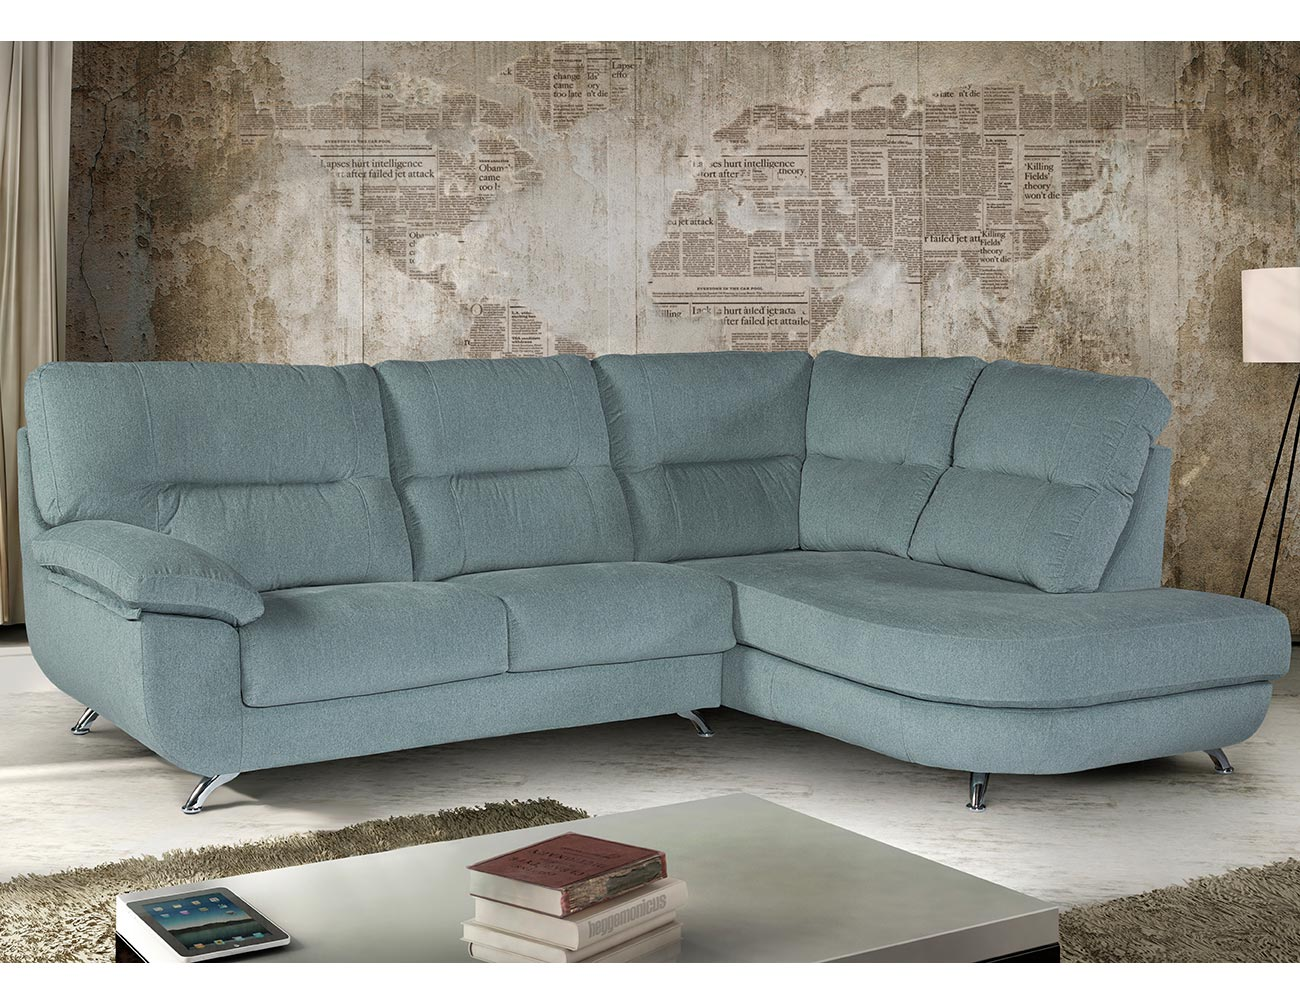 Sofa chaiselongue rincon moderno